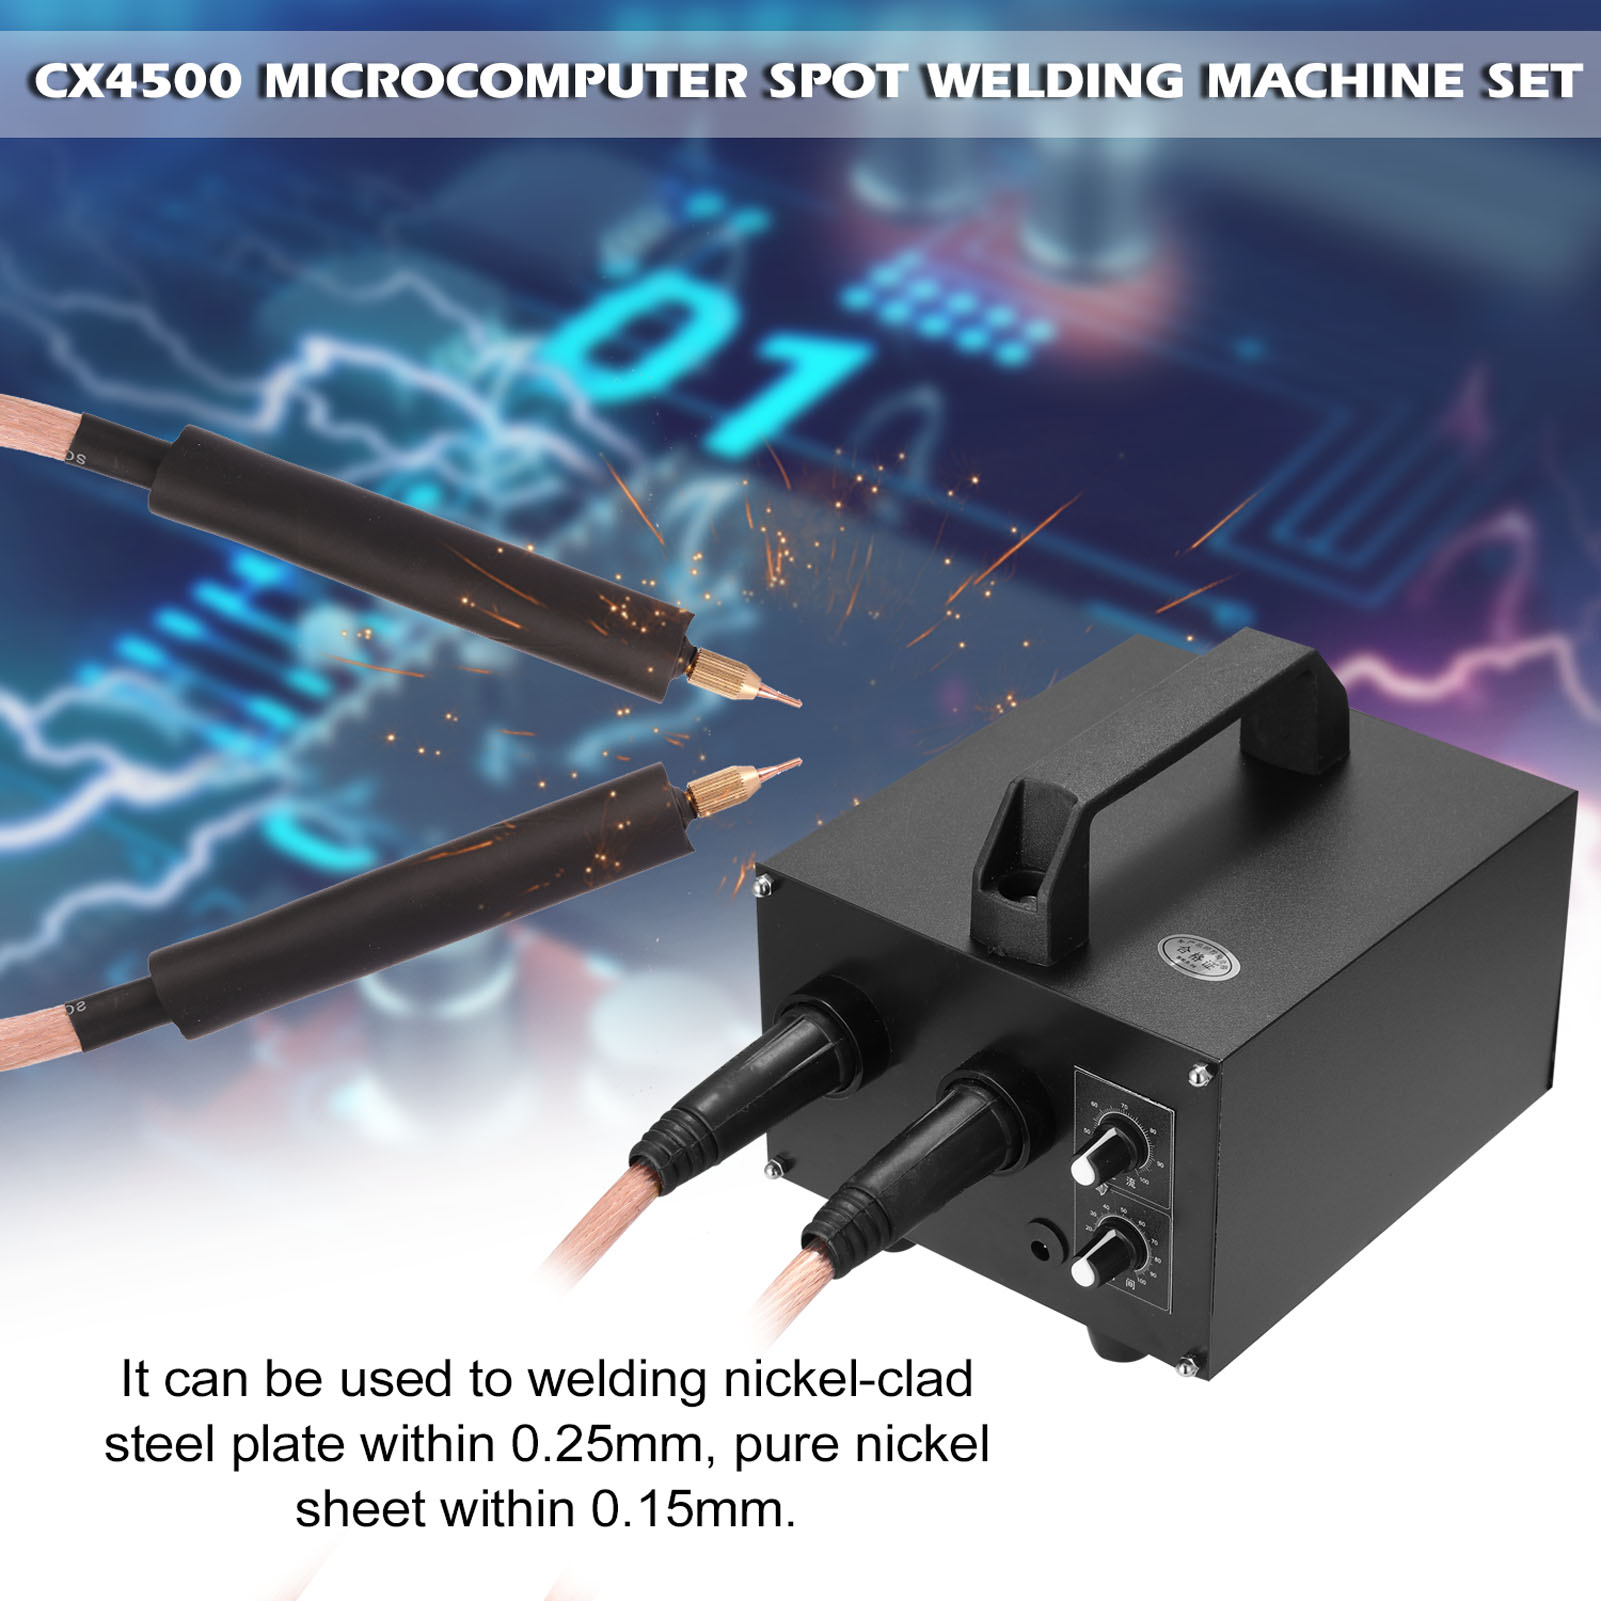 Tools : 220V 110V Microcomputer Spot Welding Machine Set 20ms-1s Time Adjustable 640-1600A Current for 0 25mm Nickel-clad Steel Plate